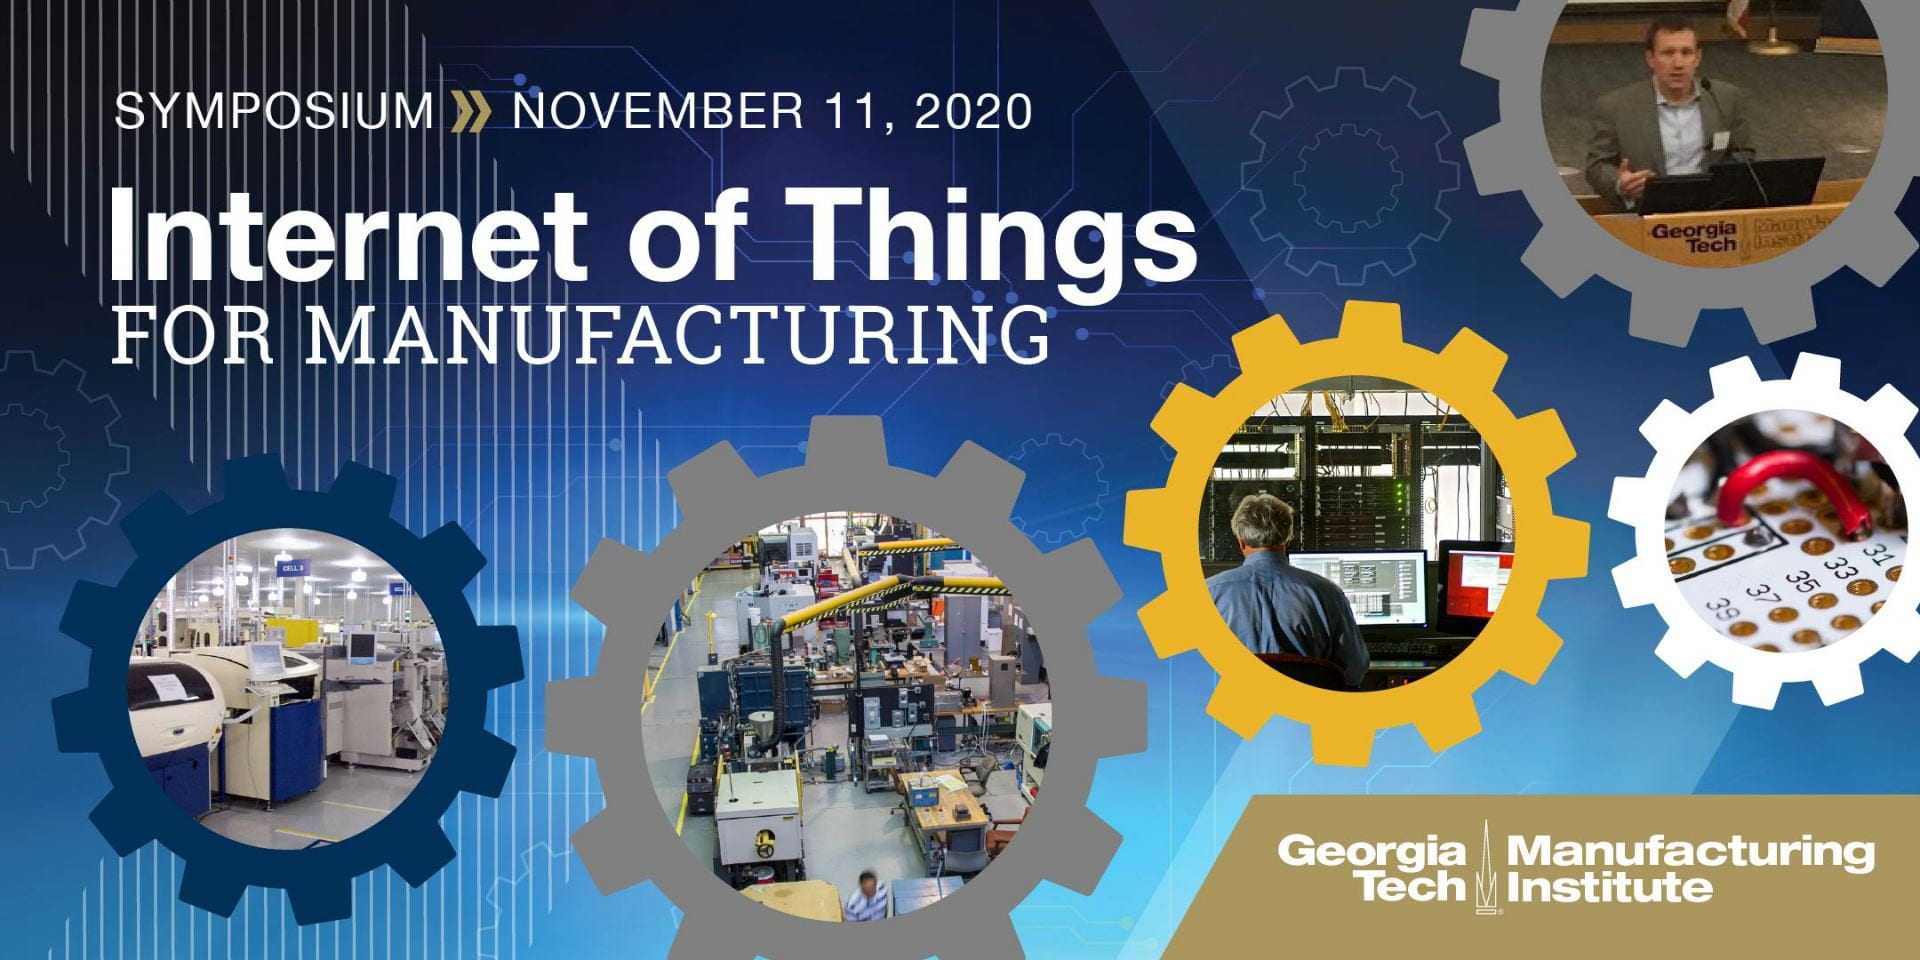 2020 Internet of Things for Manufacturing Symposium